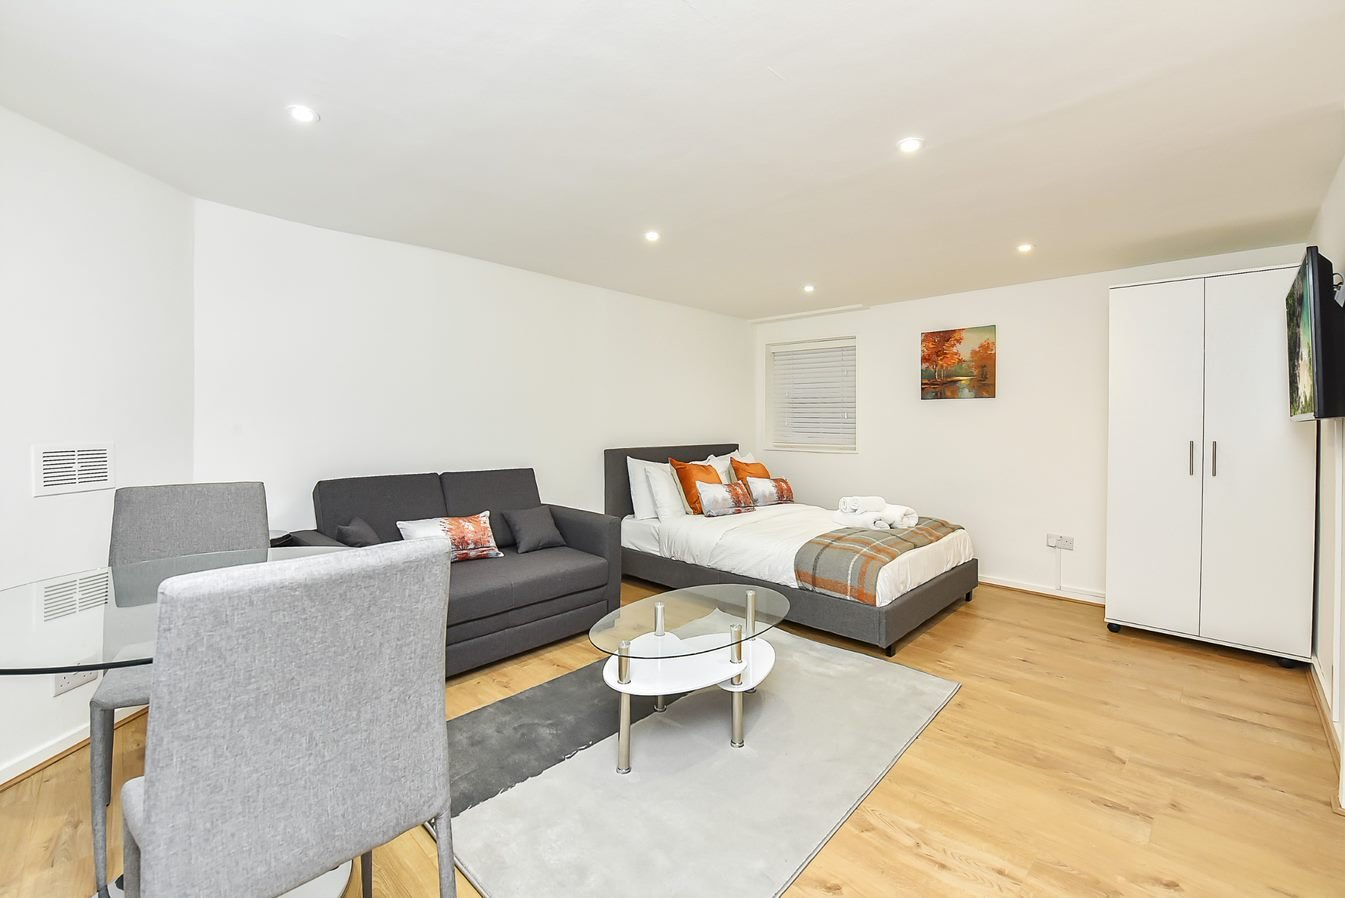 Property details: Let Other Agents - Ormond Yard, Mayfiar, SW1Y